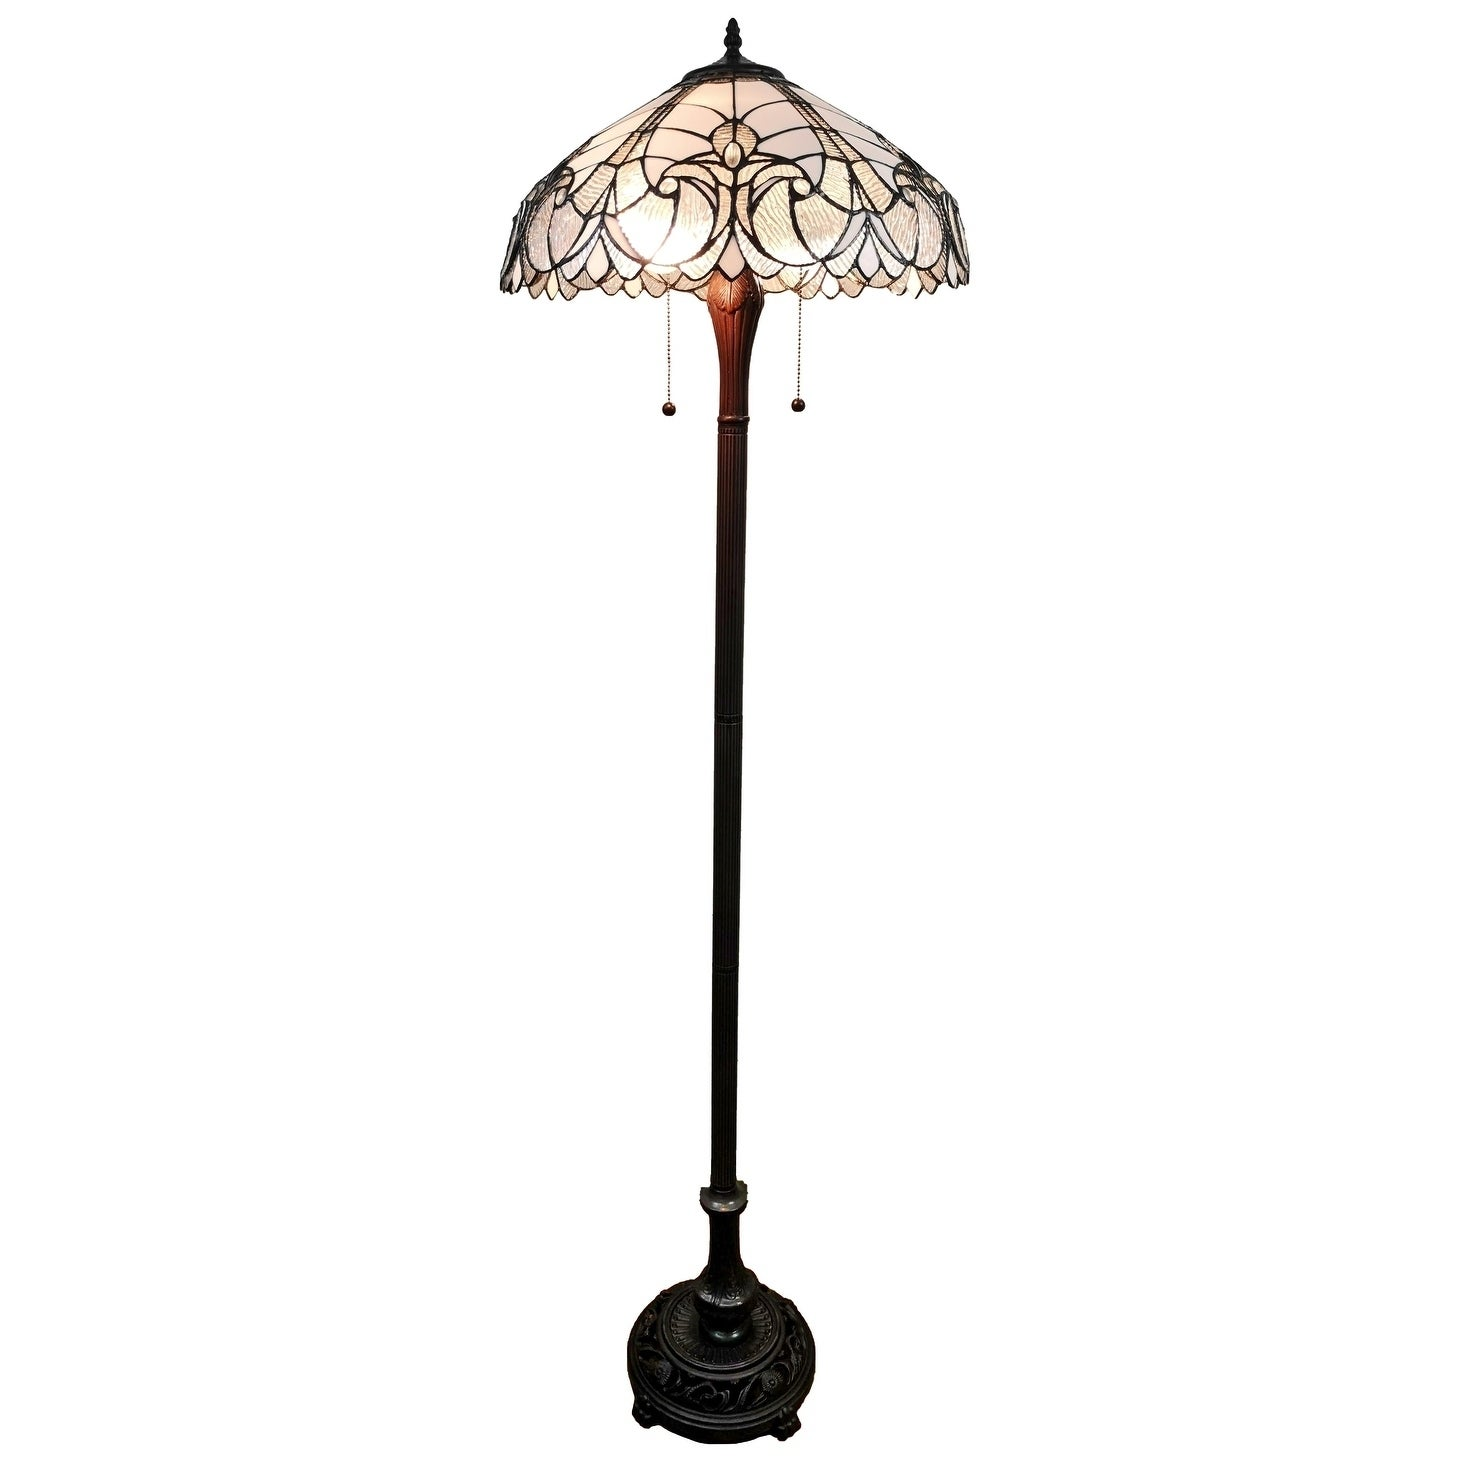 Amora Lighting Tiffany Style Floral Floor Lamp 62 Inches White